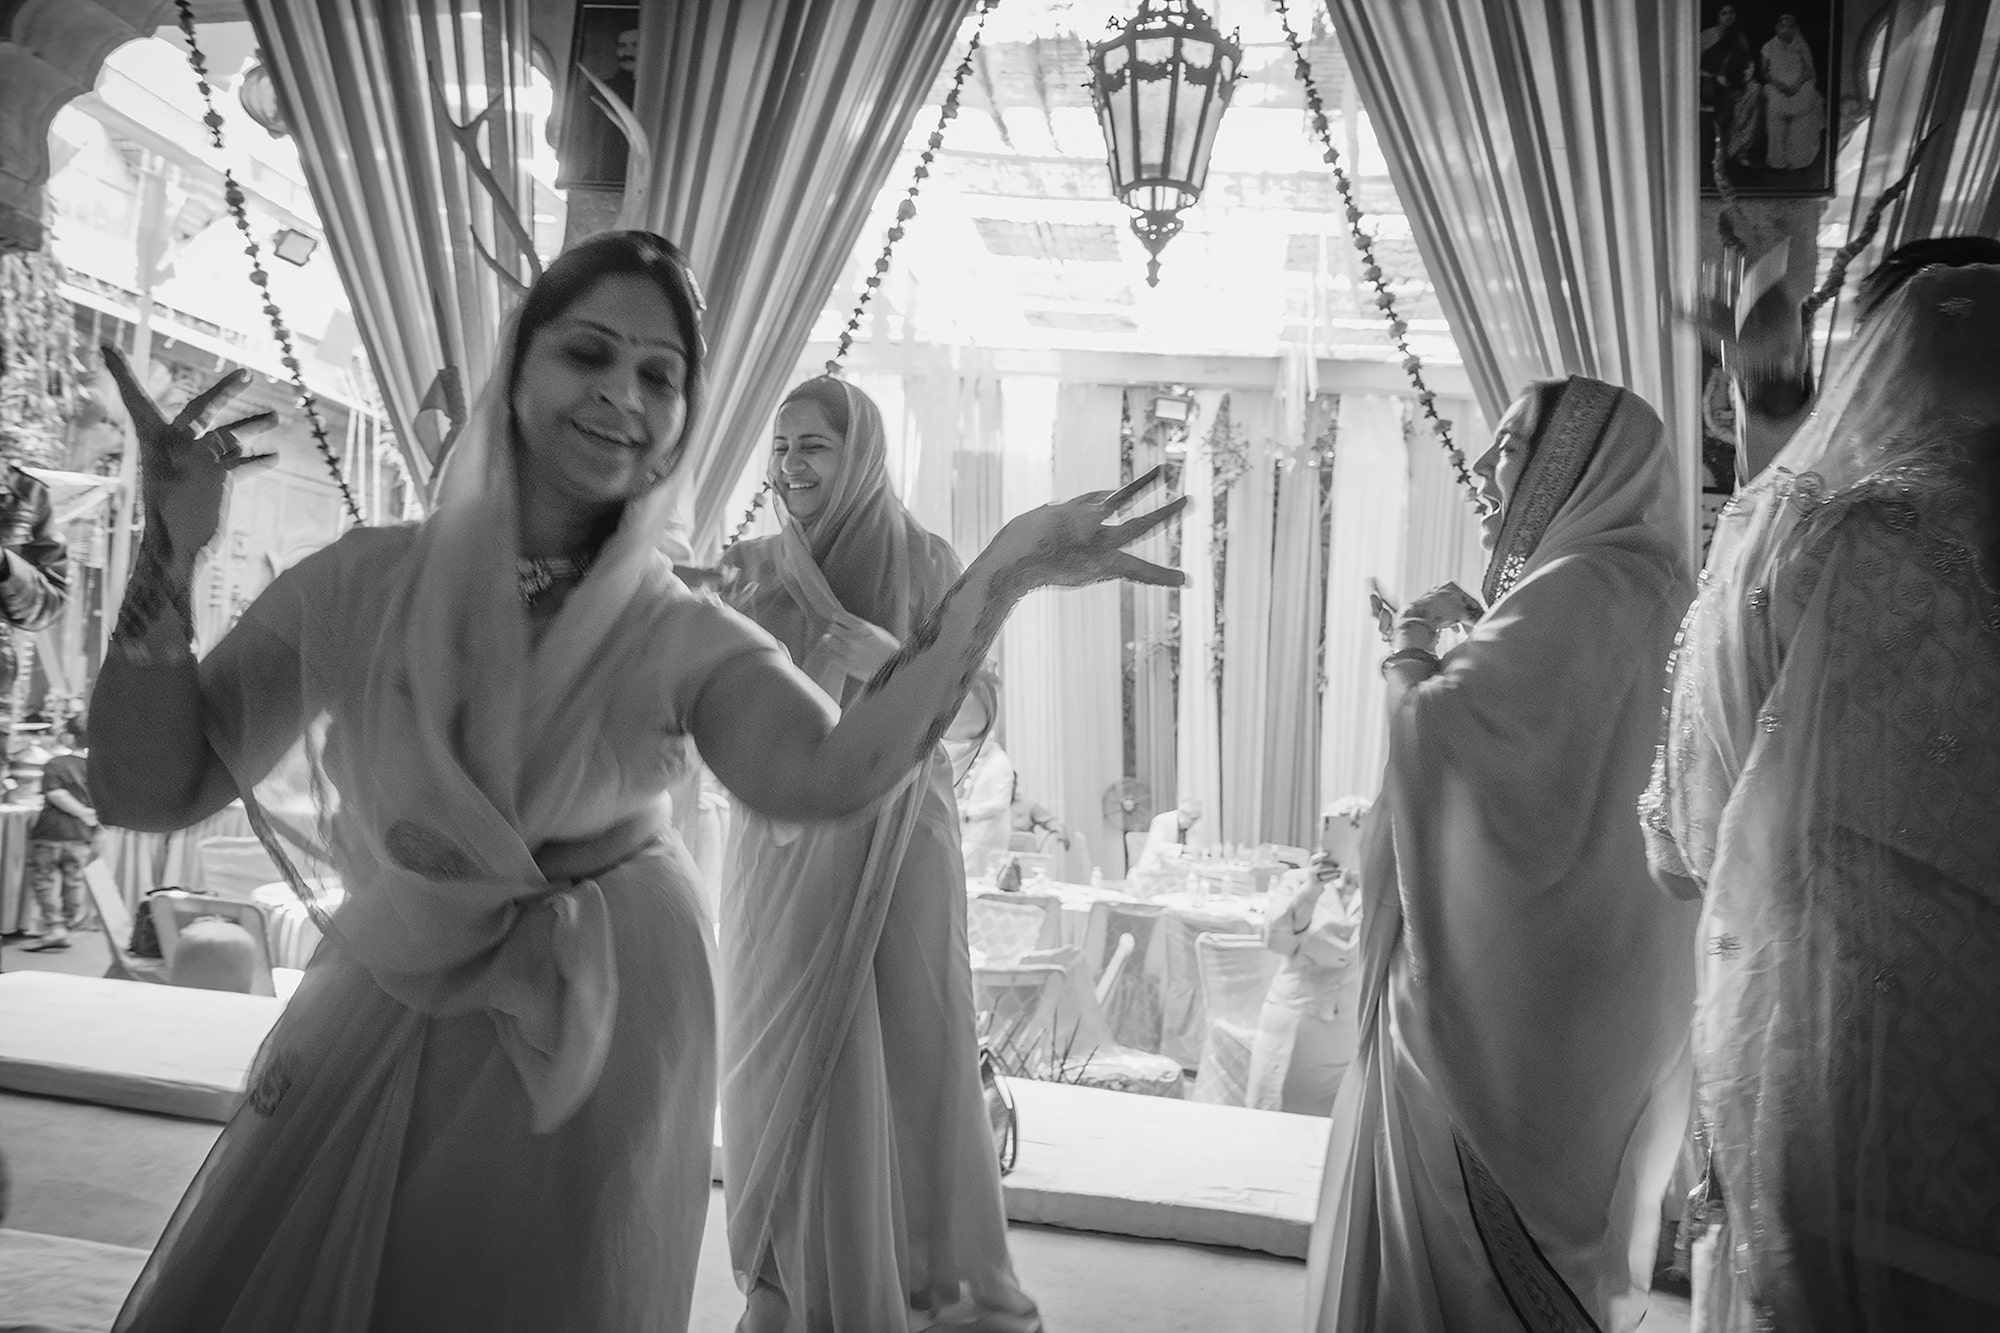 marek arcimowicz sony rx100V indian bridal party dancing as they get ready for wedding